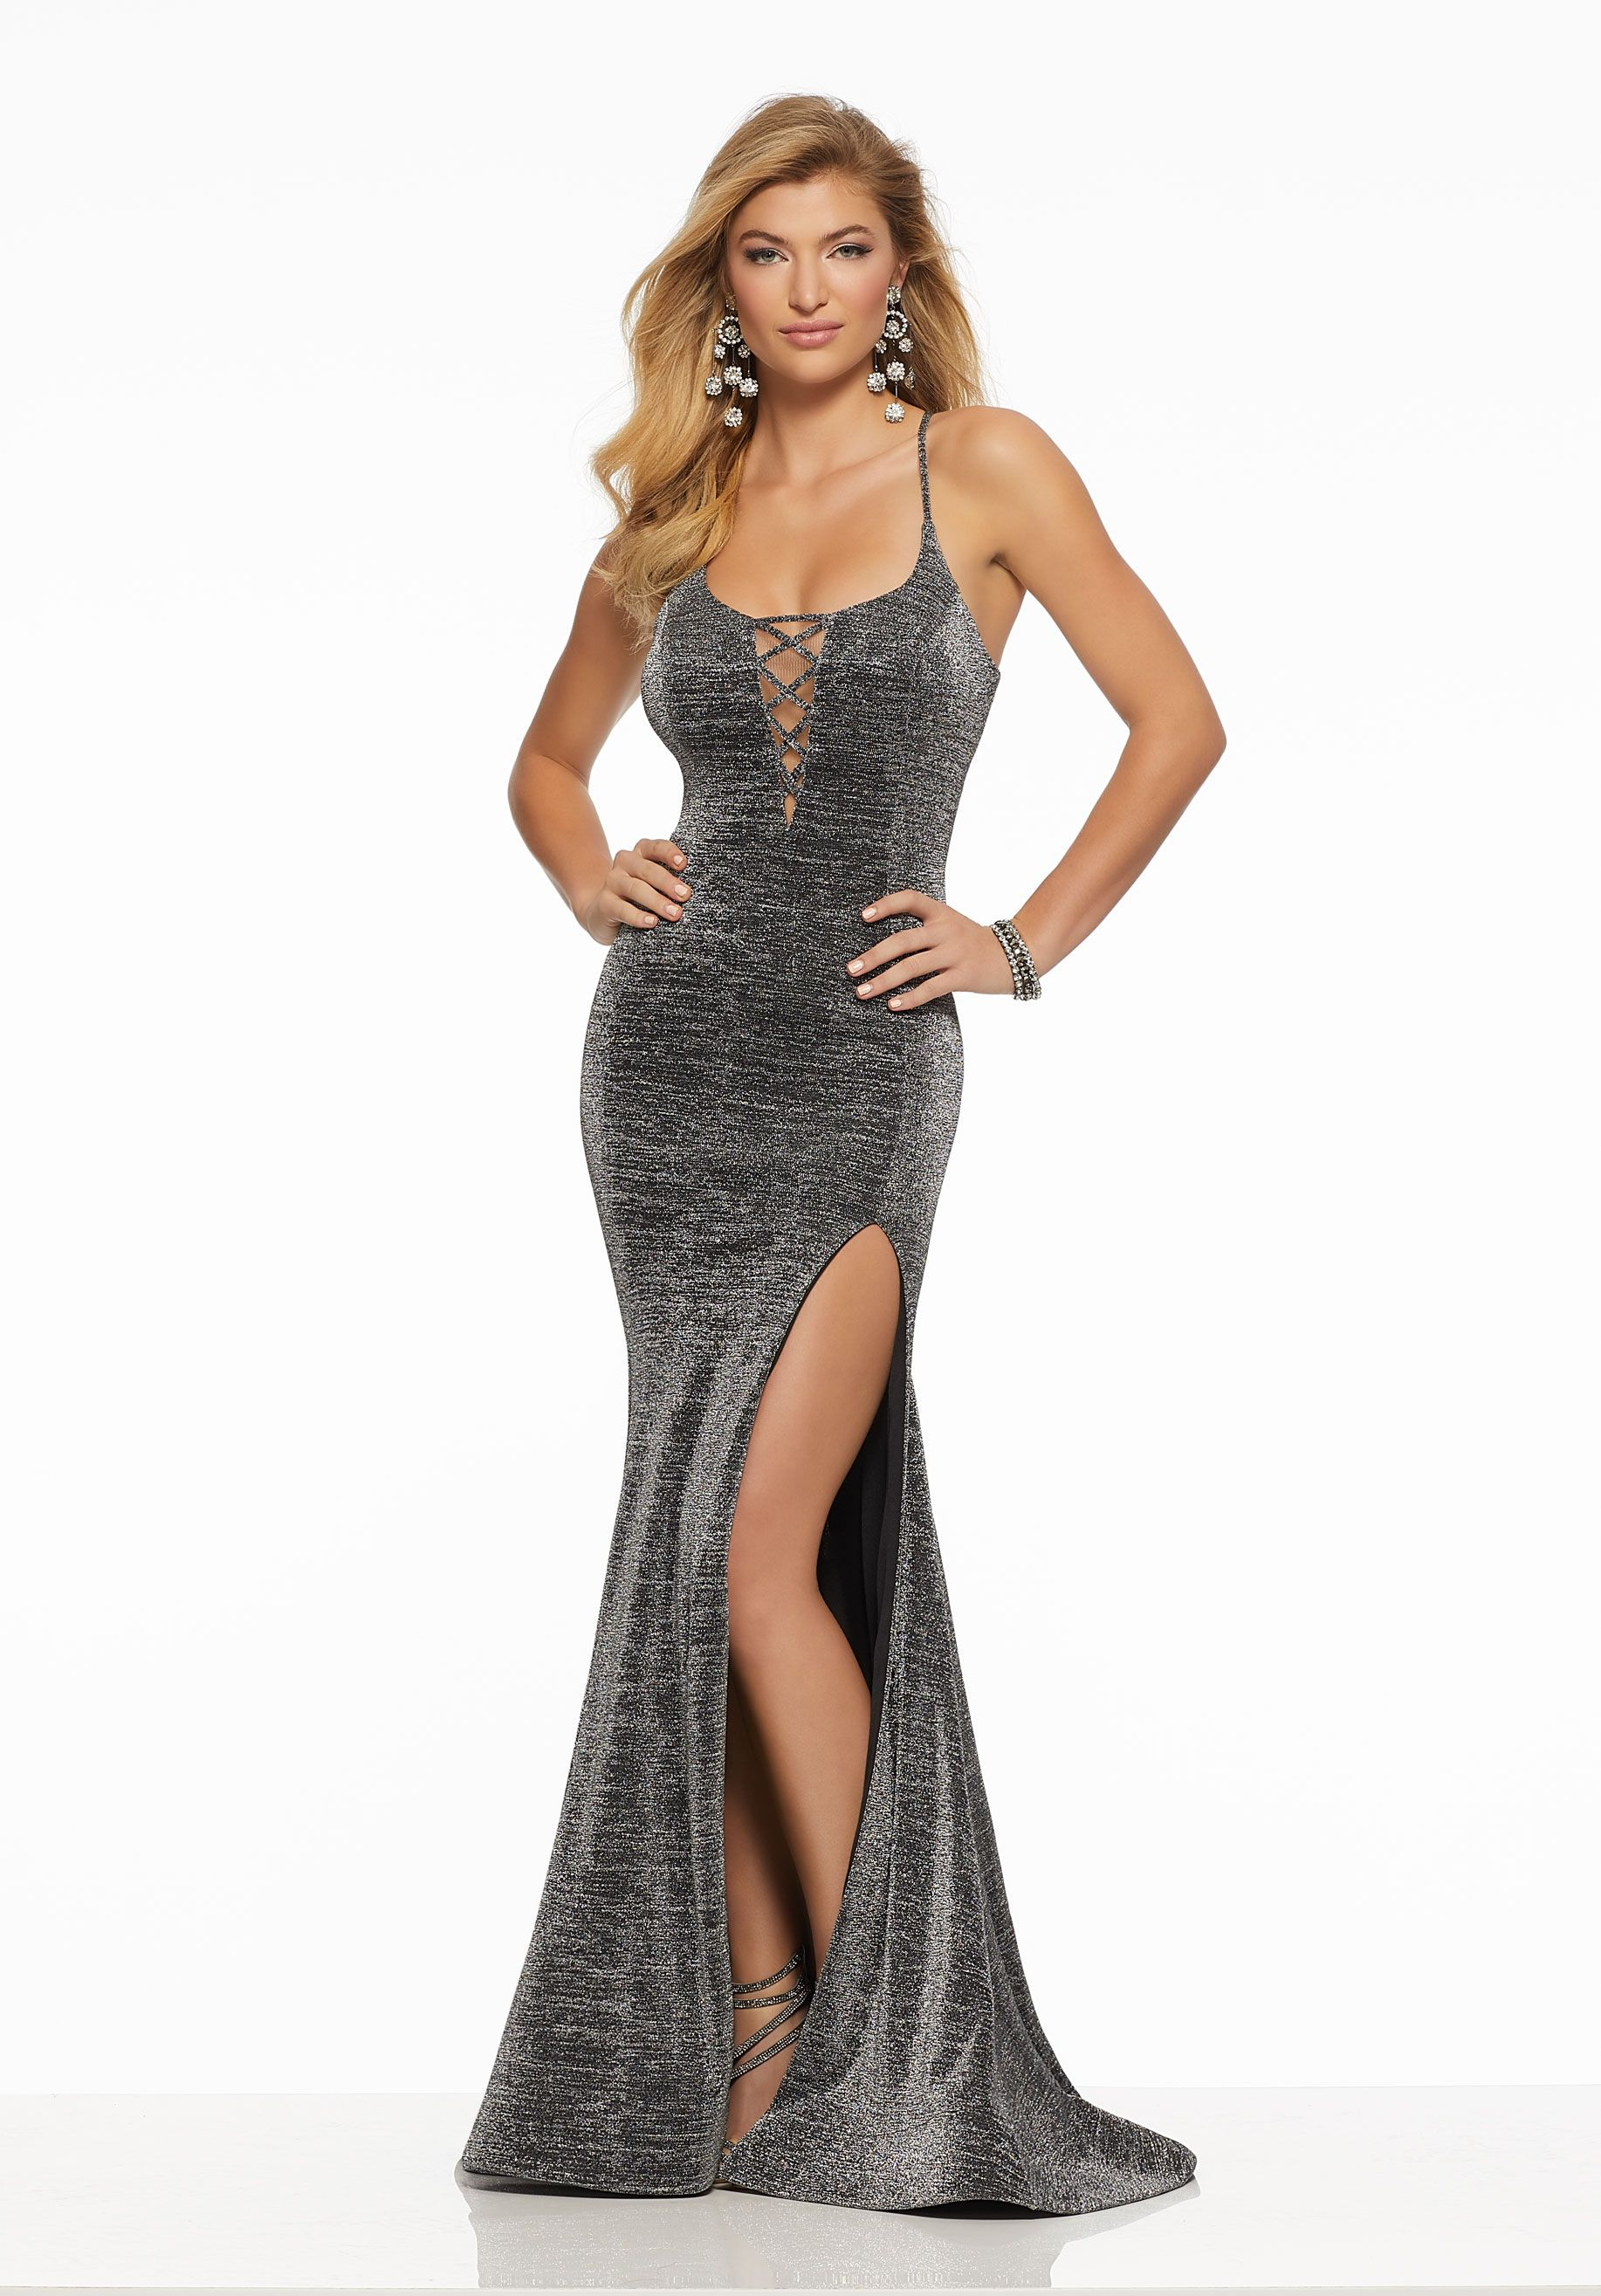 46ba4a7073 Pin by TLC Bridal Boutique on Prom 2019 in 2019